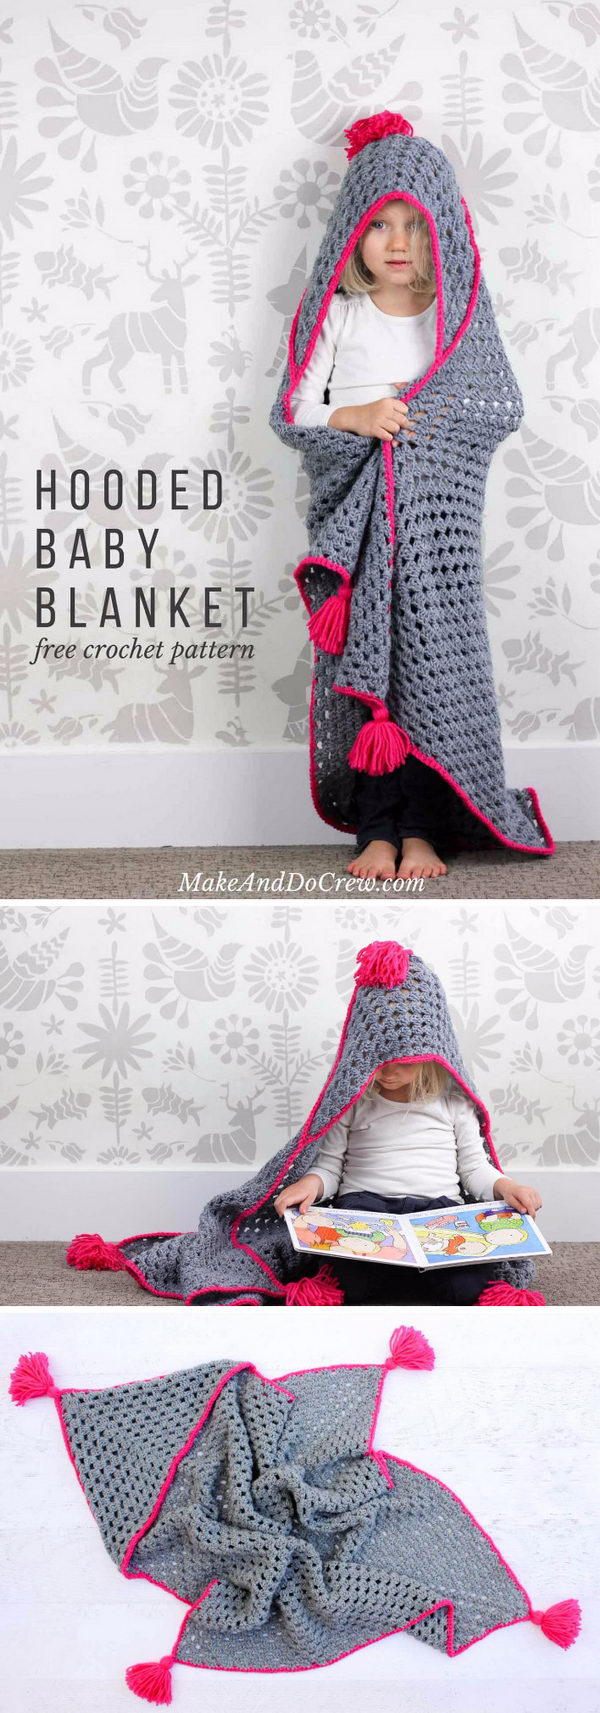 Crochet Hooded Baby Blanket.